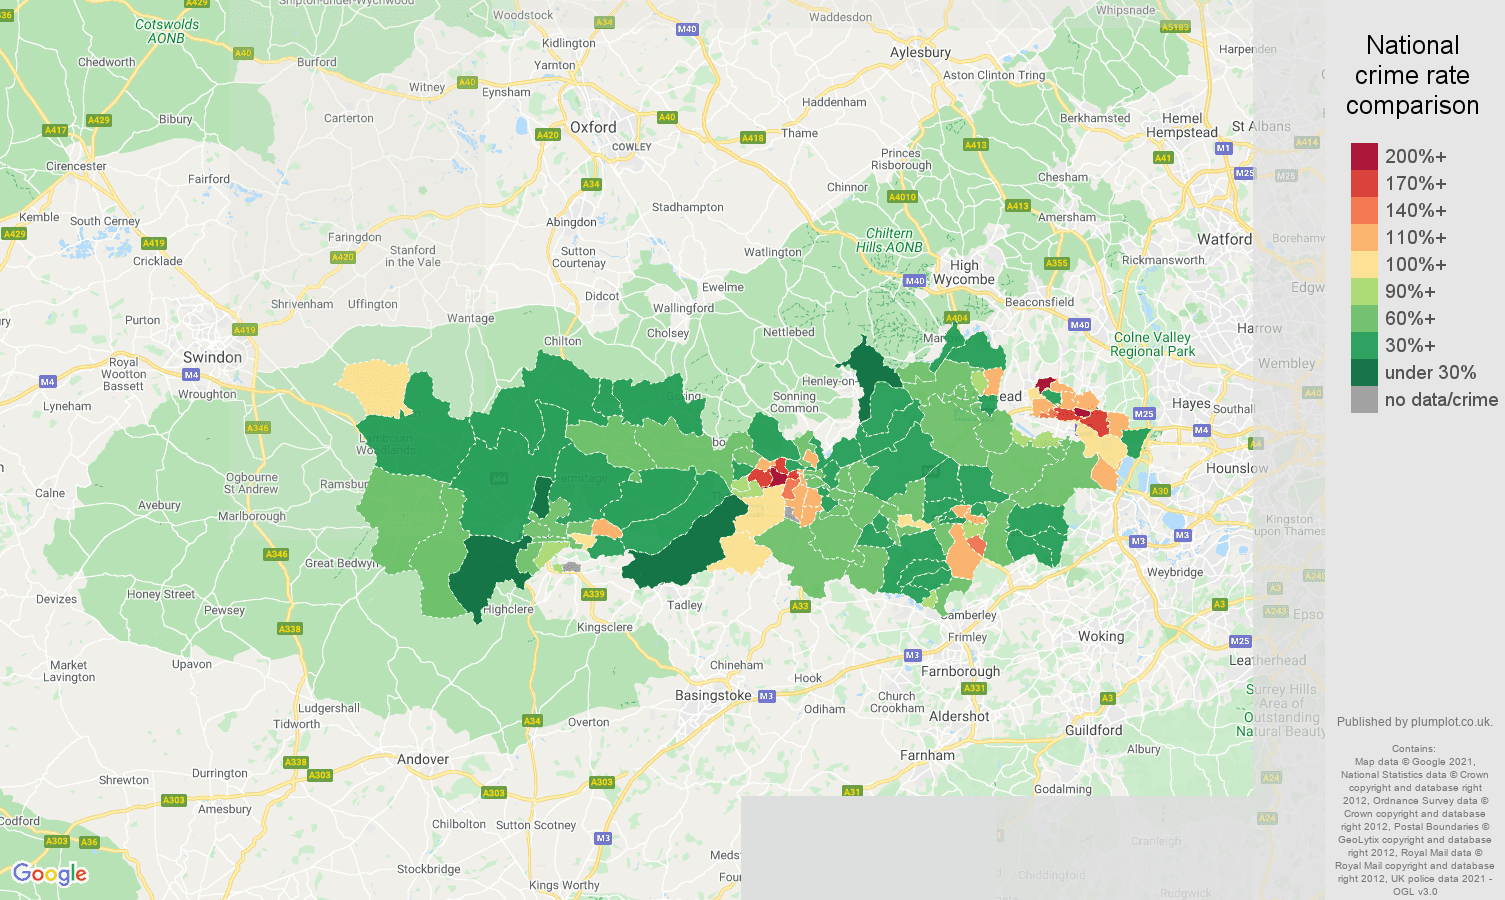 Berkshire violent crime rate comparison map